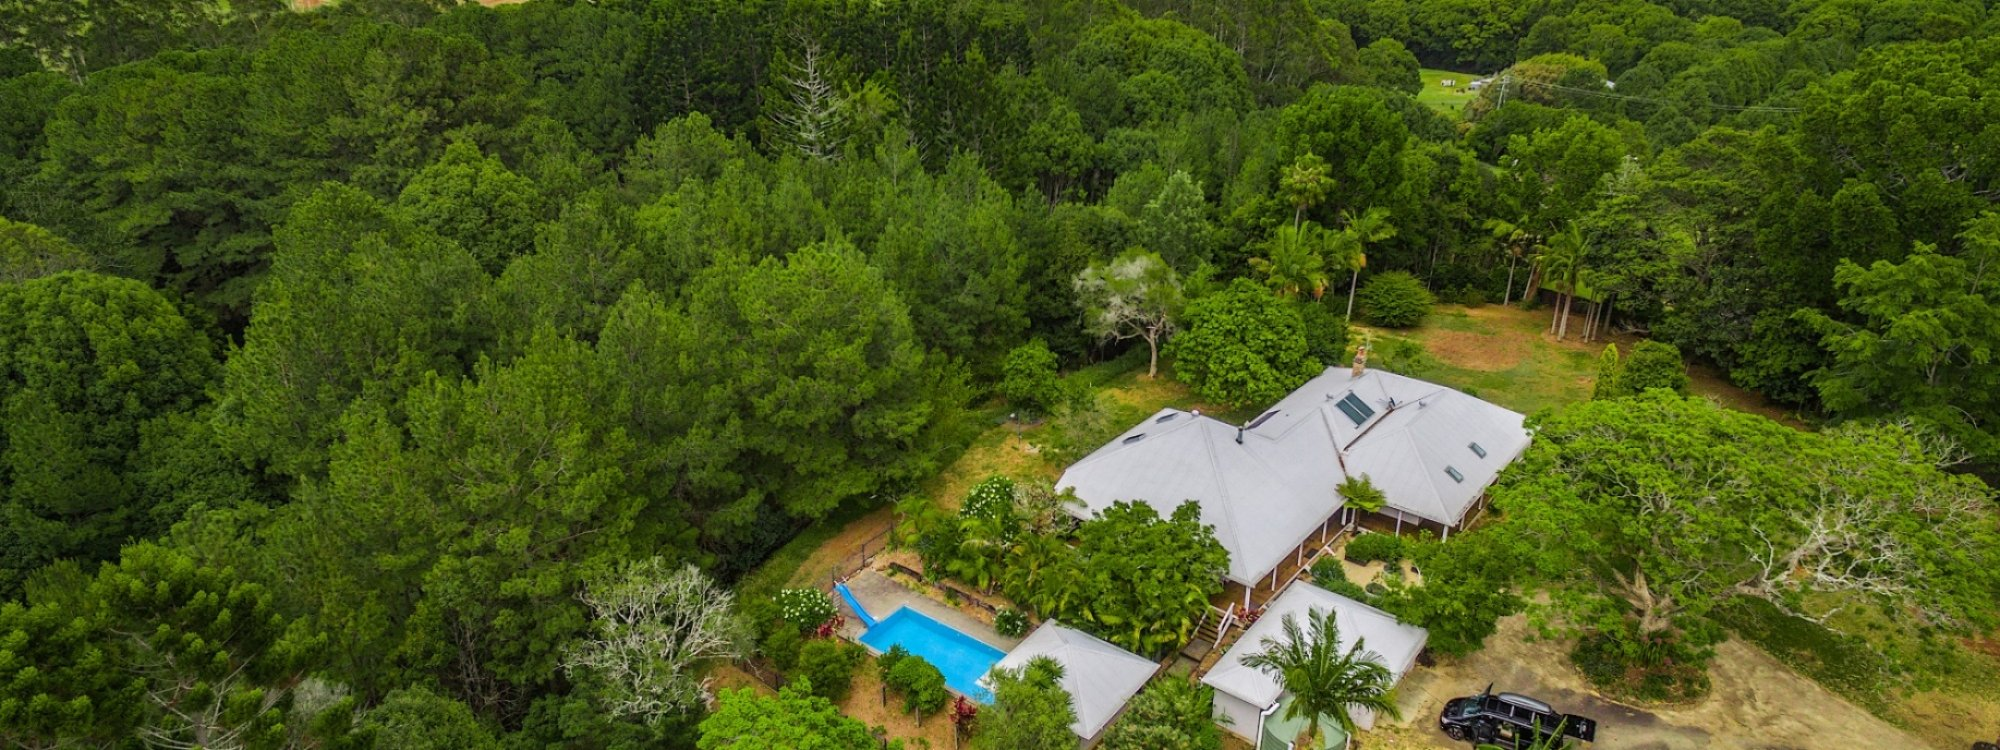 Byron Creek House - Ariel View